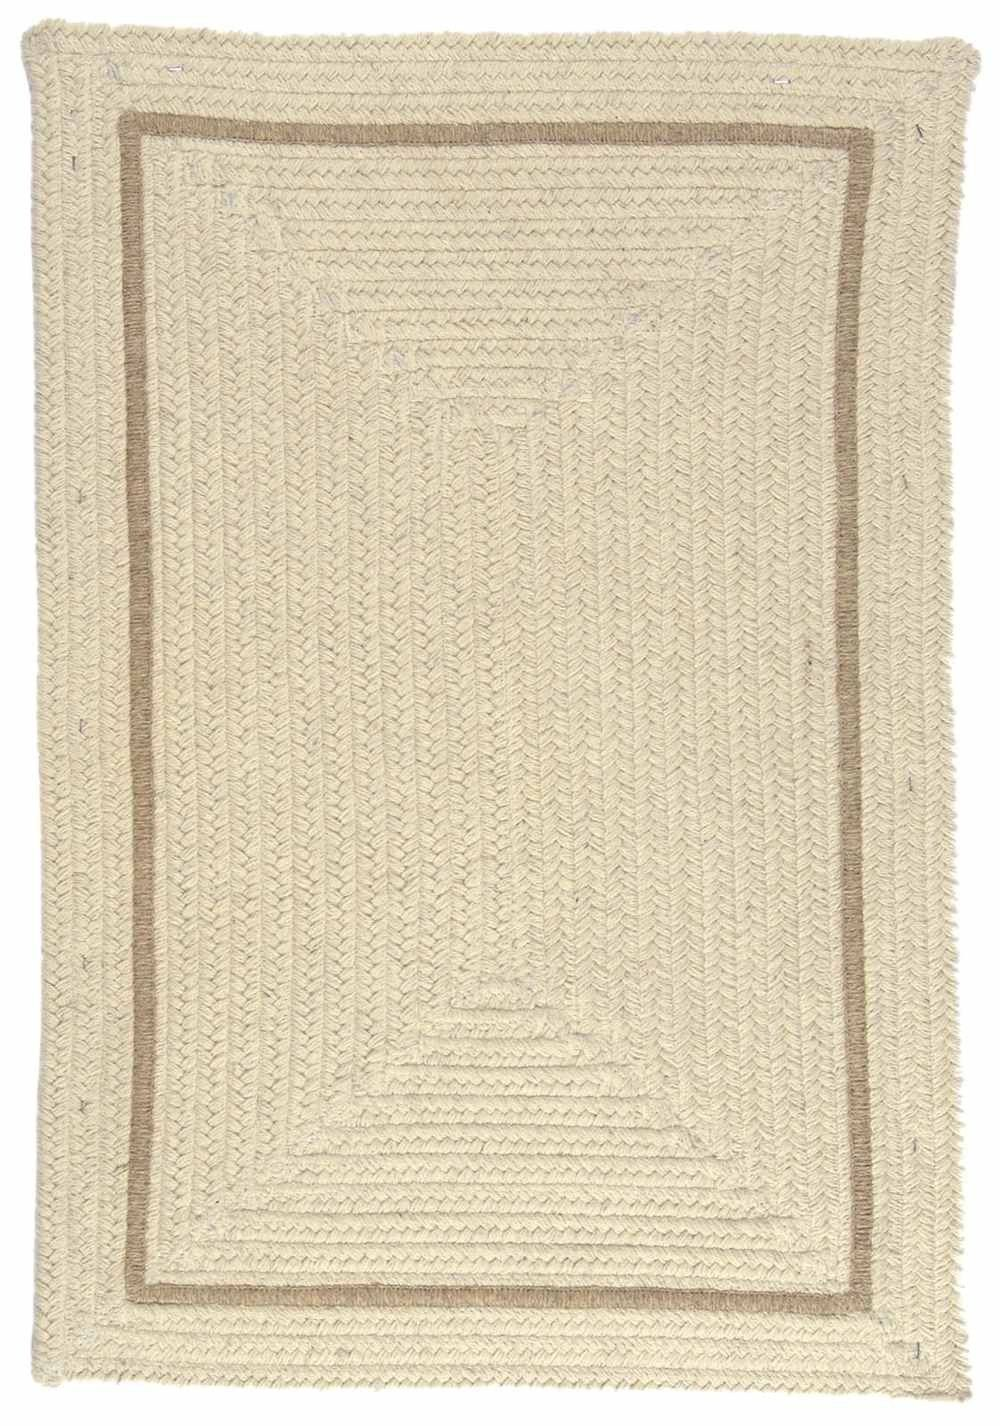 Shear Natural En30 Braided Canvas Rug